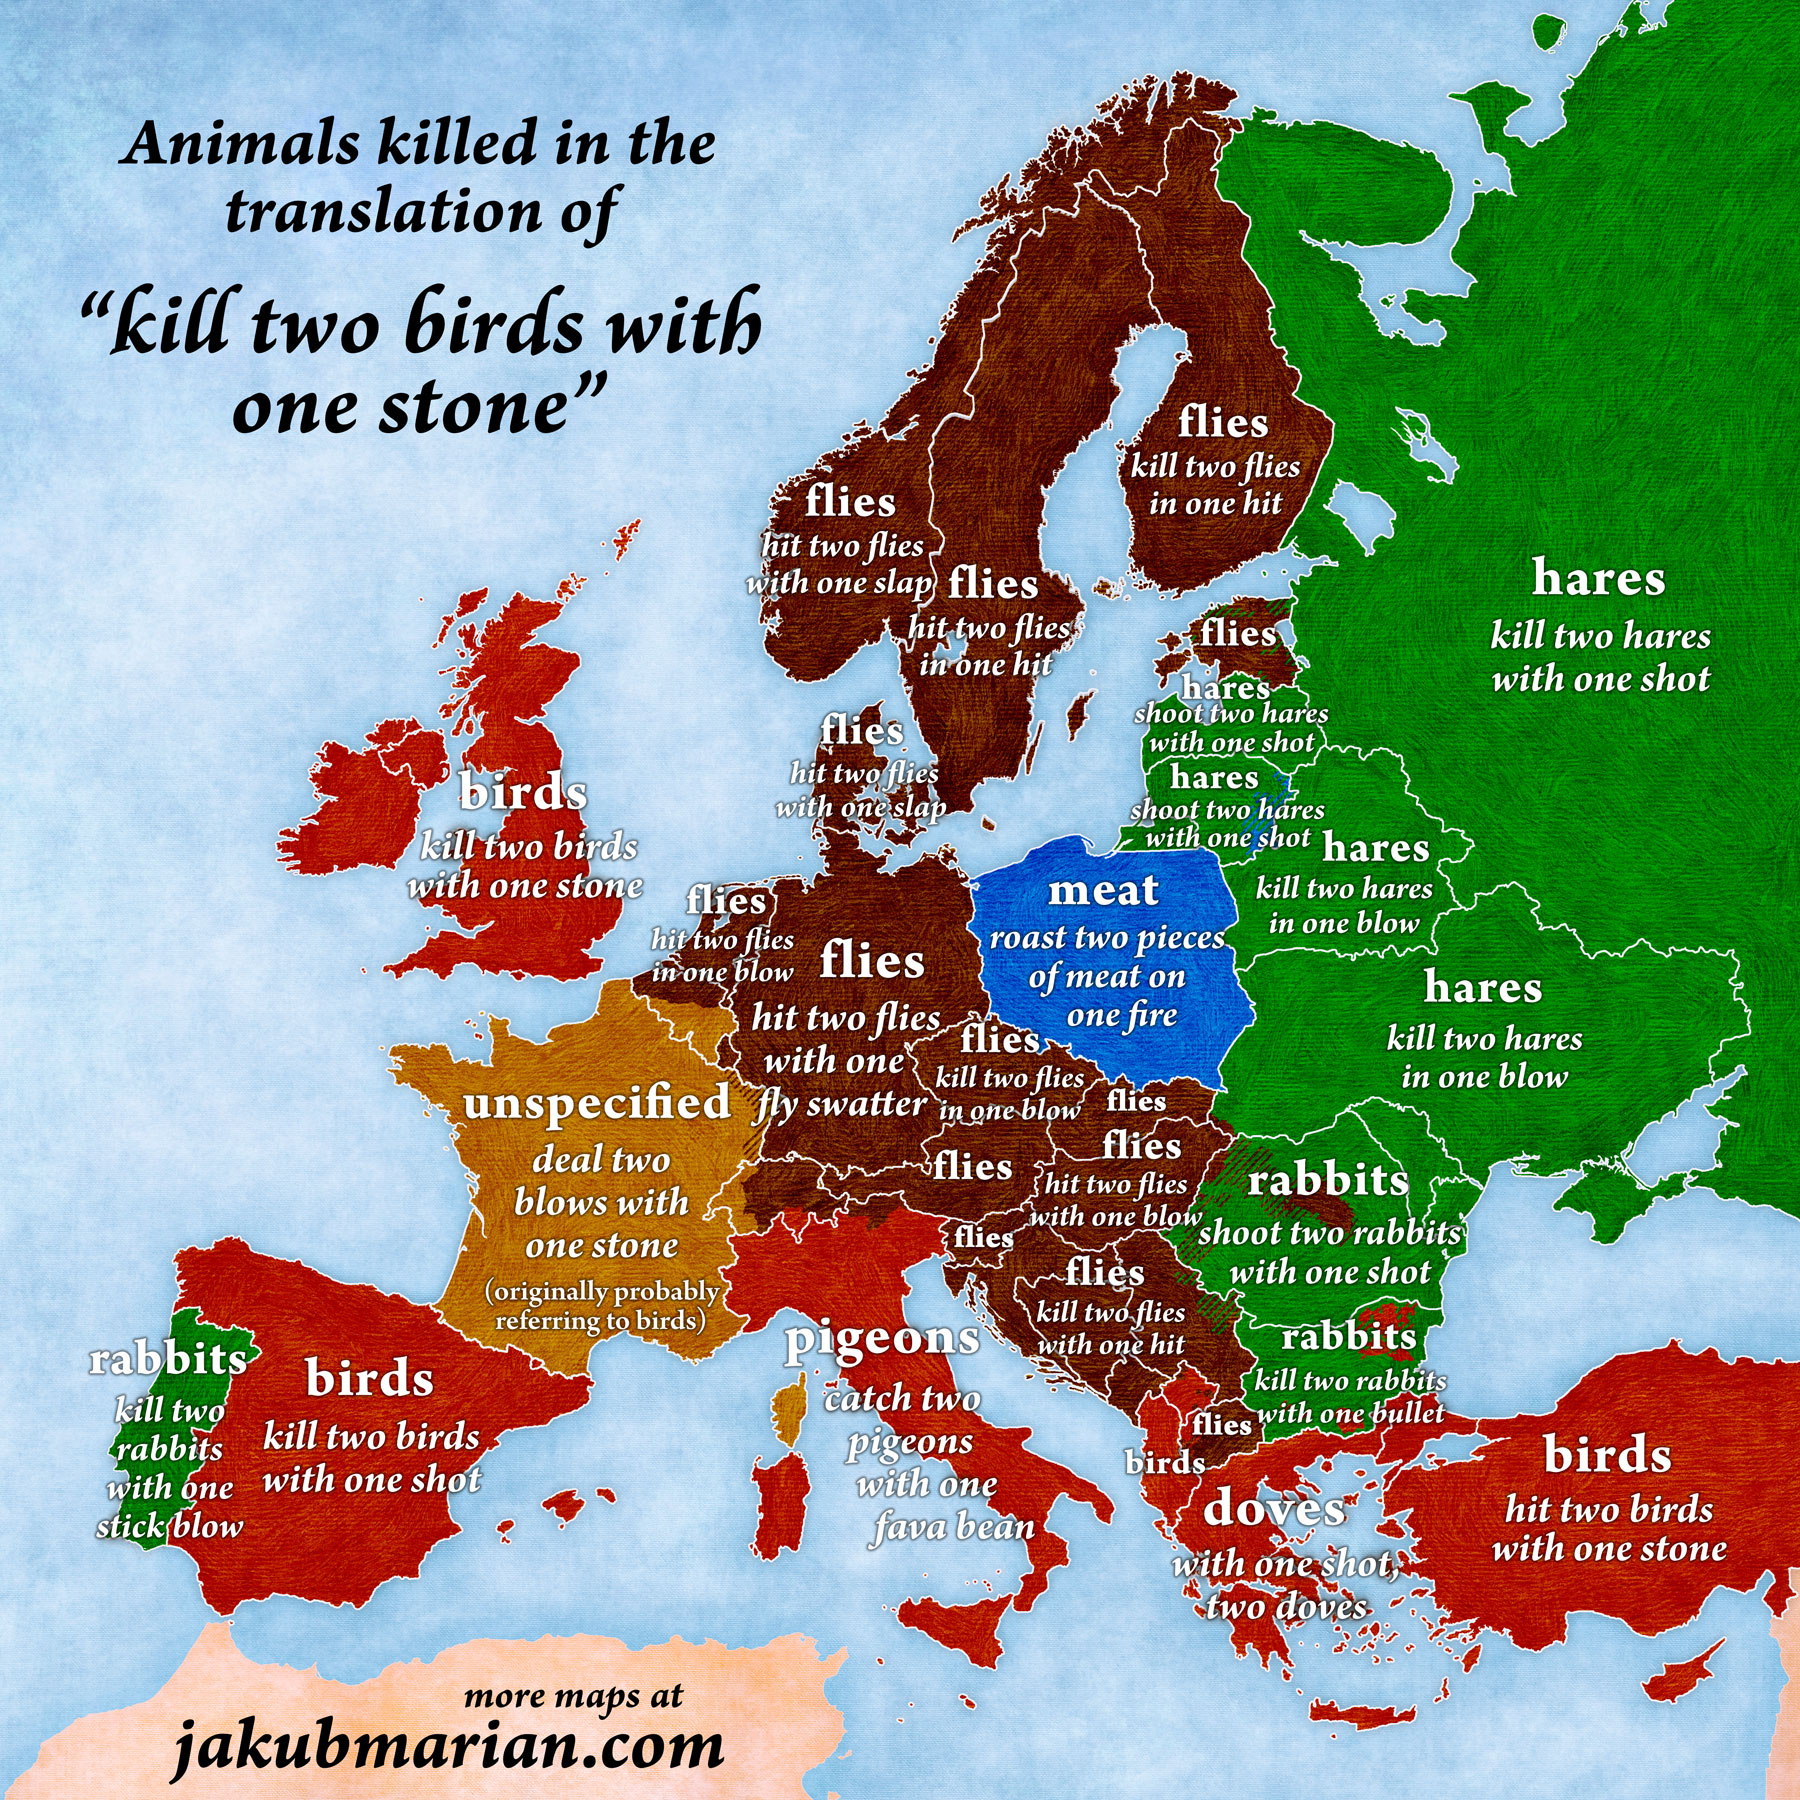 Kill two birds with one stone in European languages